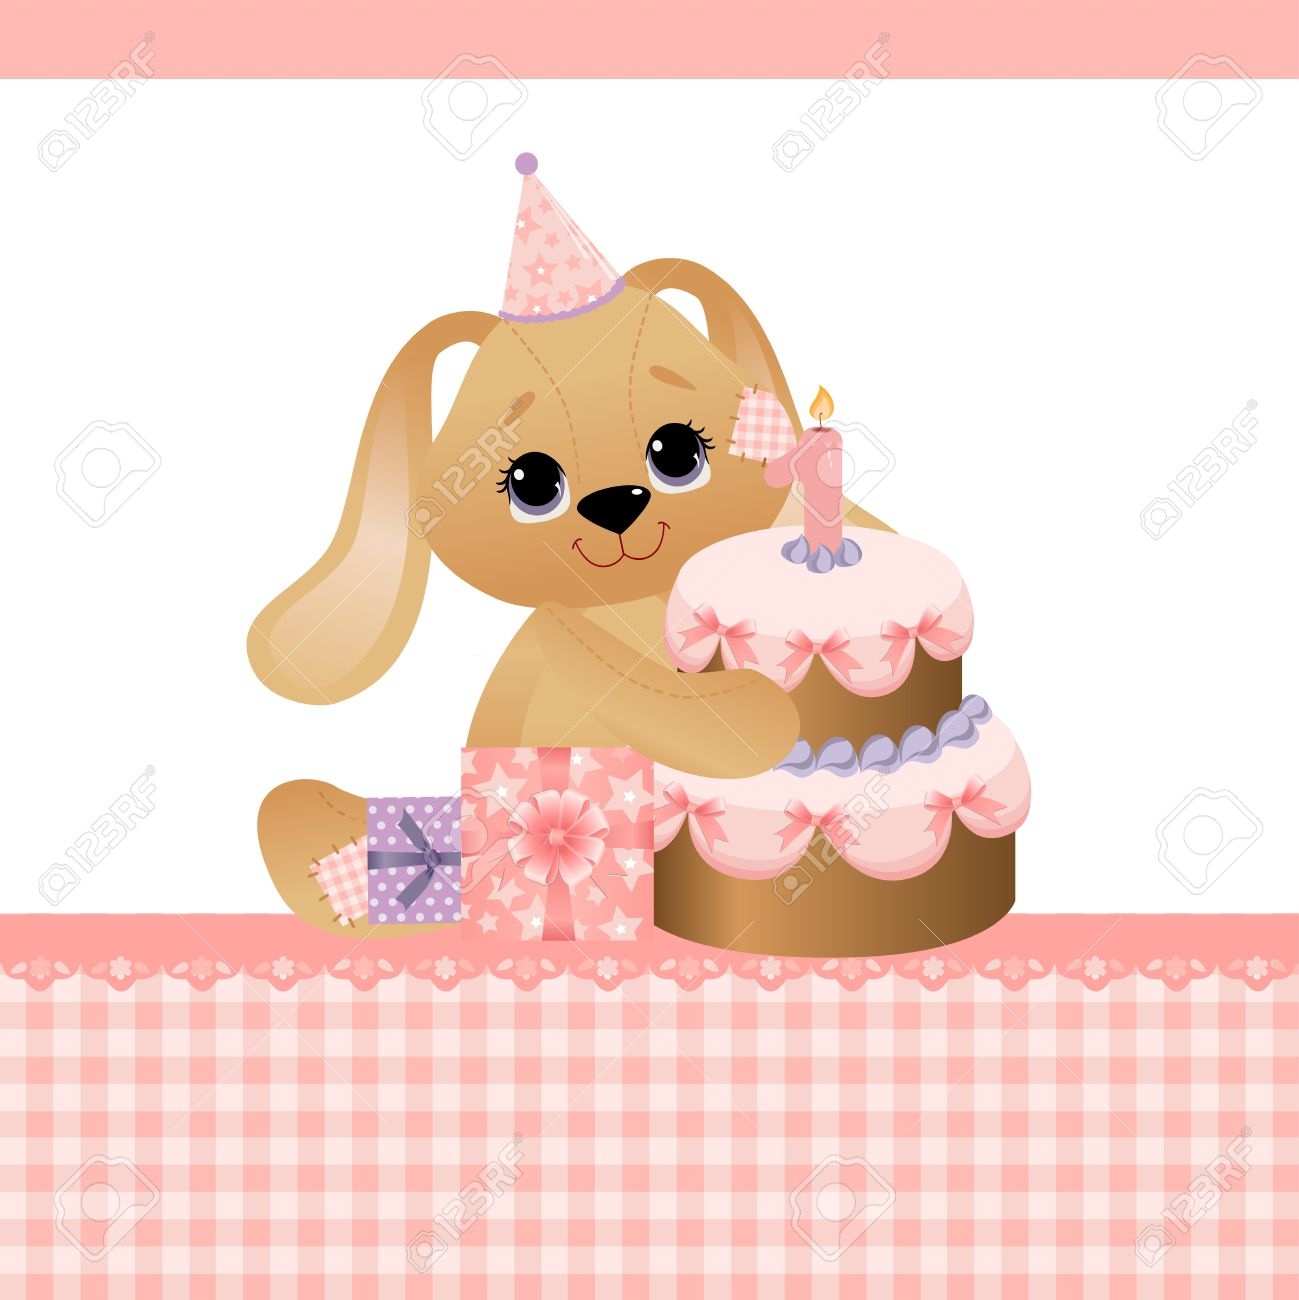 Cute Template For Baby Birthday Greetings Card Royalty Free Cliparts